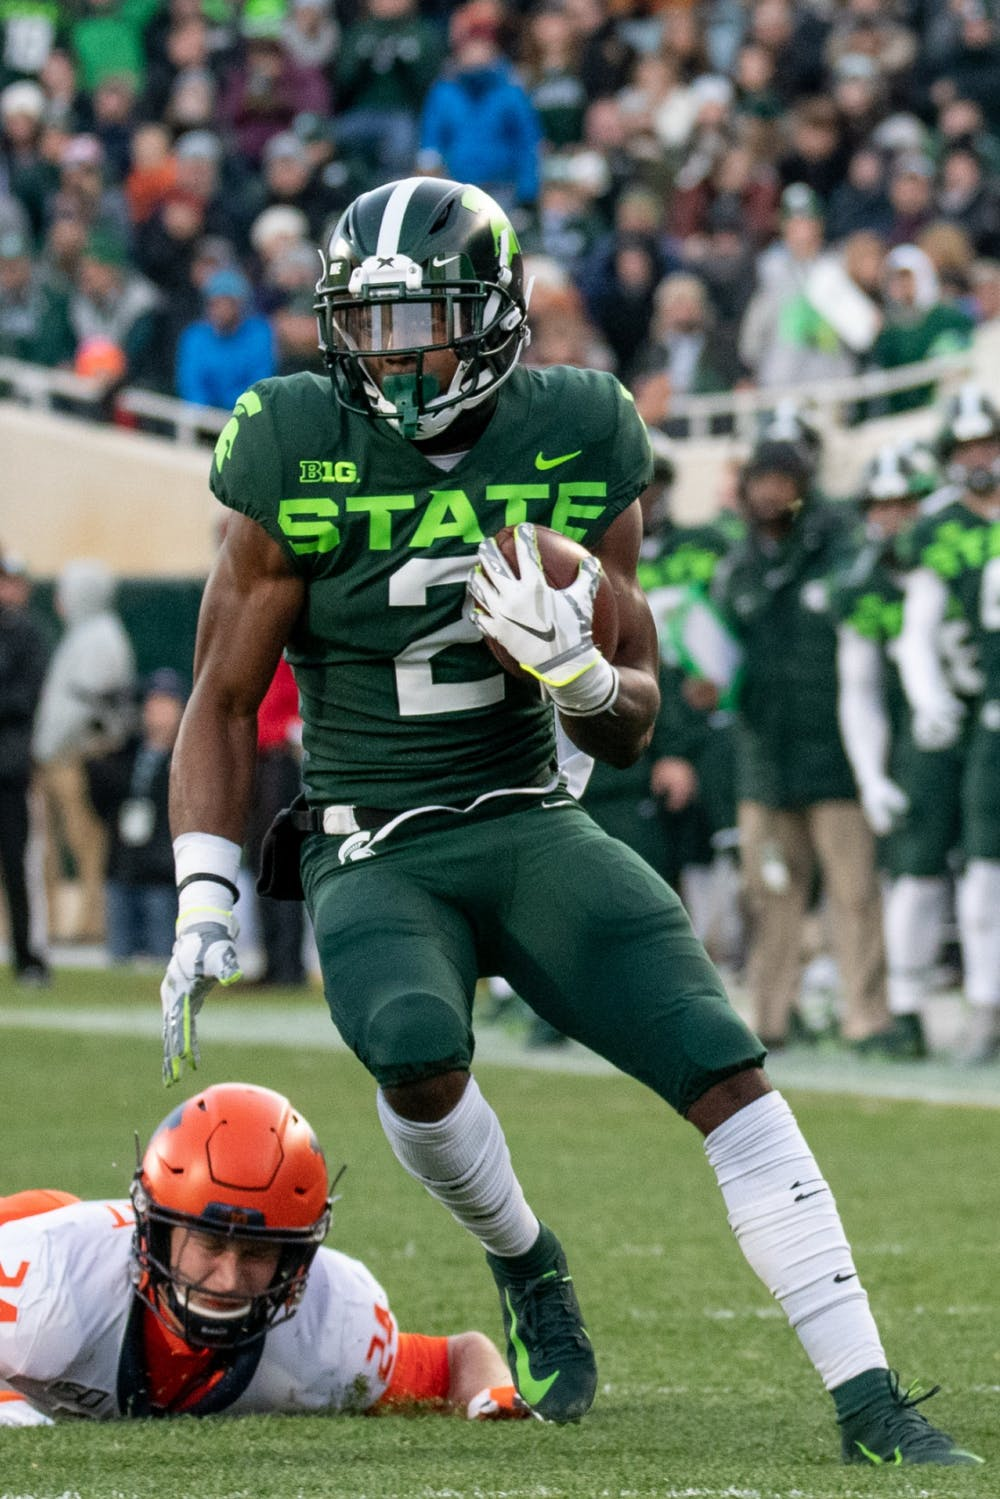 <p>Freshman wide receiver Julian Barnett (2) runs upfield during the game against Illinois on Nov. 9, 2019 at Spartan Stadium.</p>